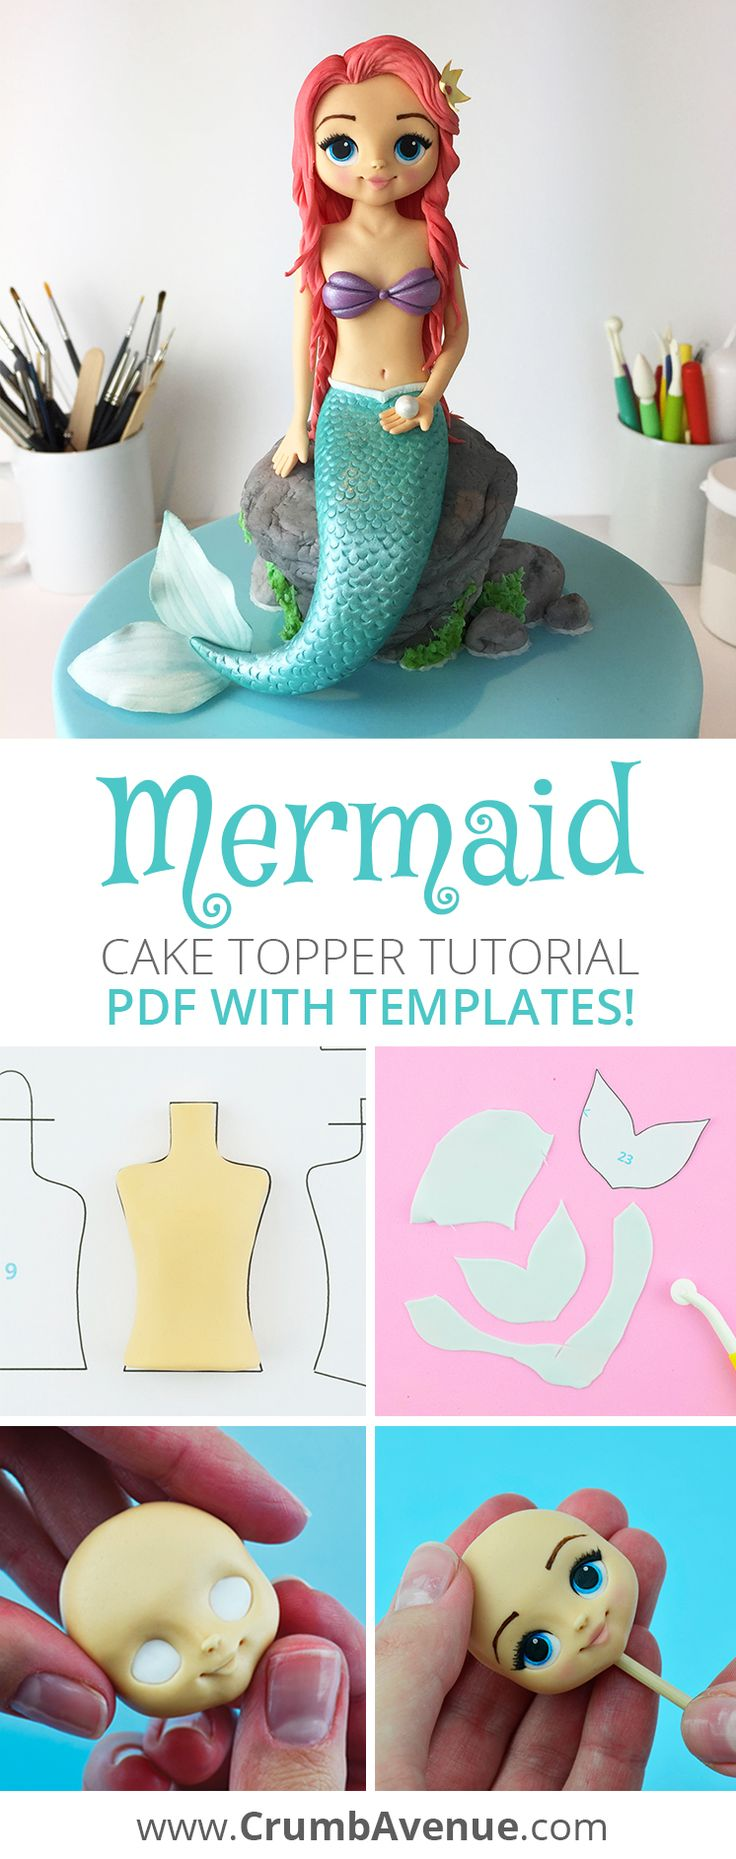 MERMAID cake topper PDF TUTORIAL with TEMPLATES (163 photos with easy-to-follow instructions) /fondant, gum paste, kids, girl, girls, cute, figure, figurine, sea, Ariel, little, idea, ideas, mermaids, ocean, fun, step by step, pictorial